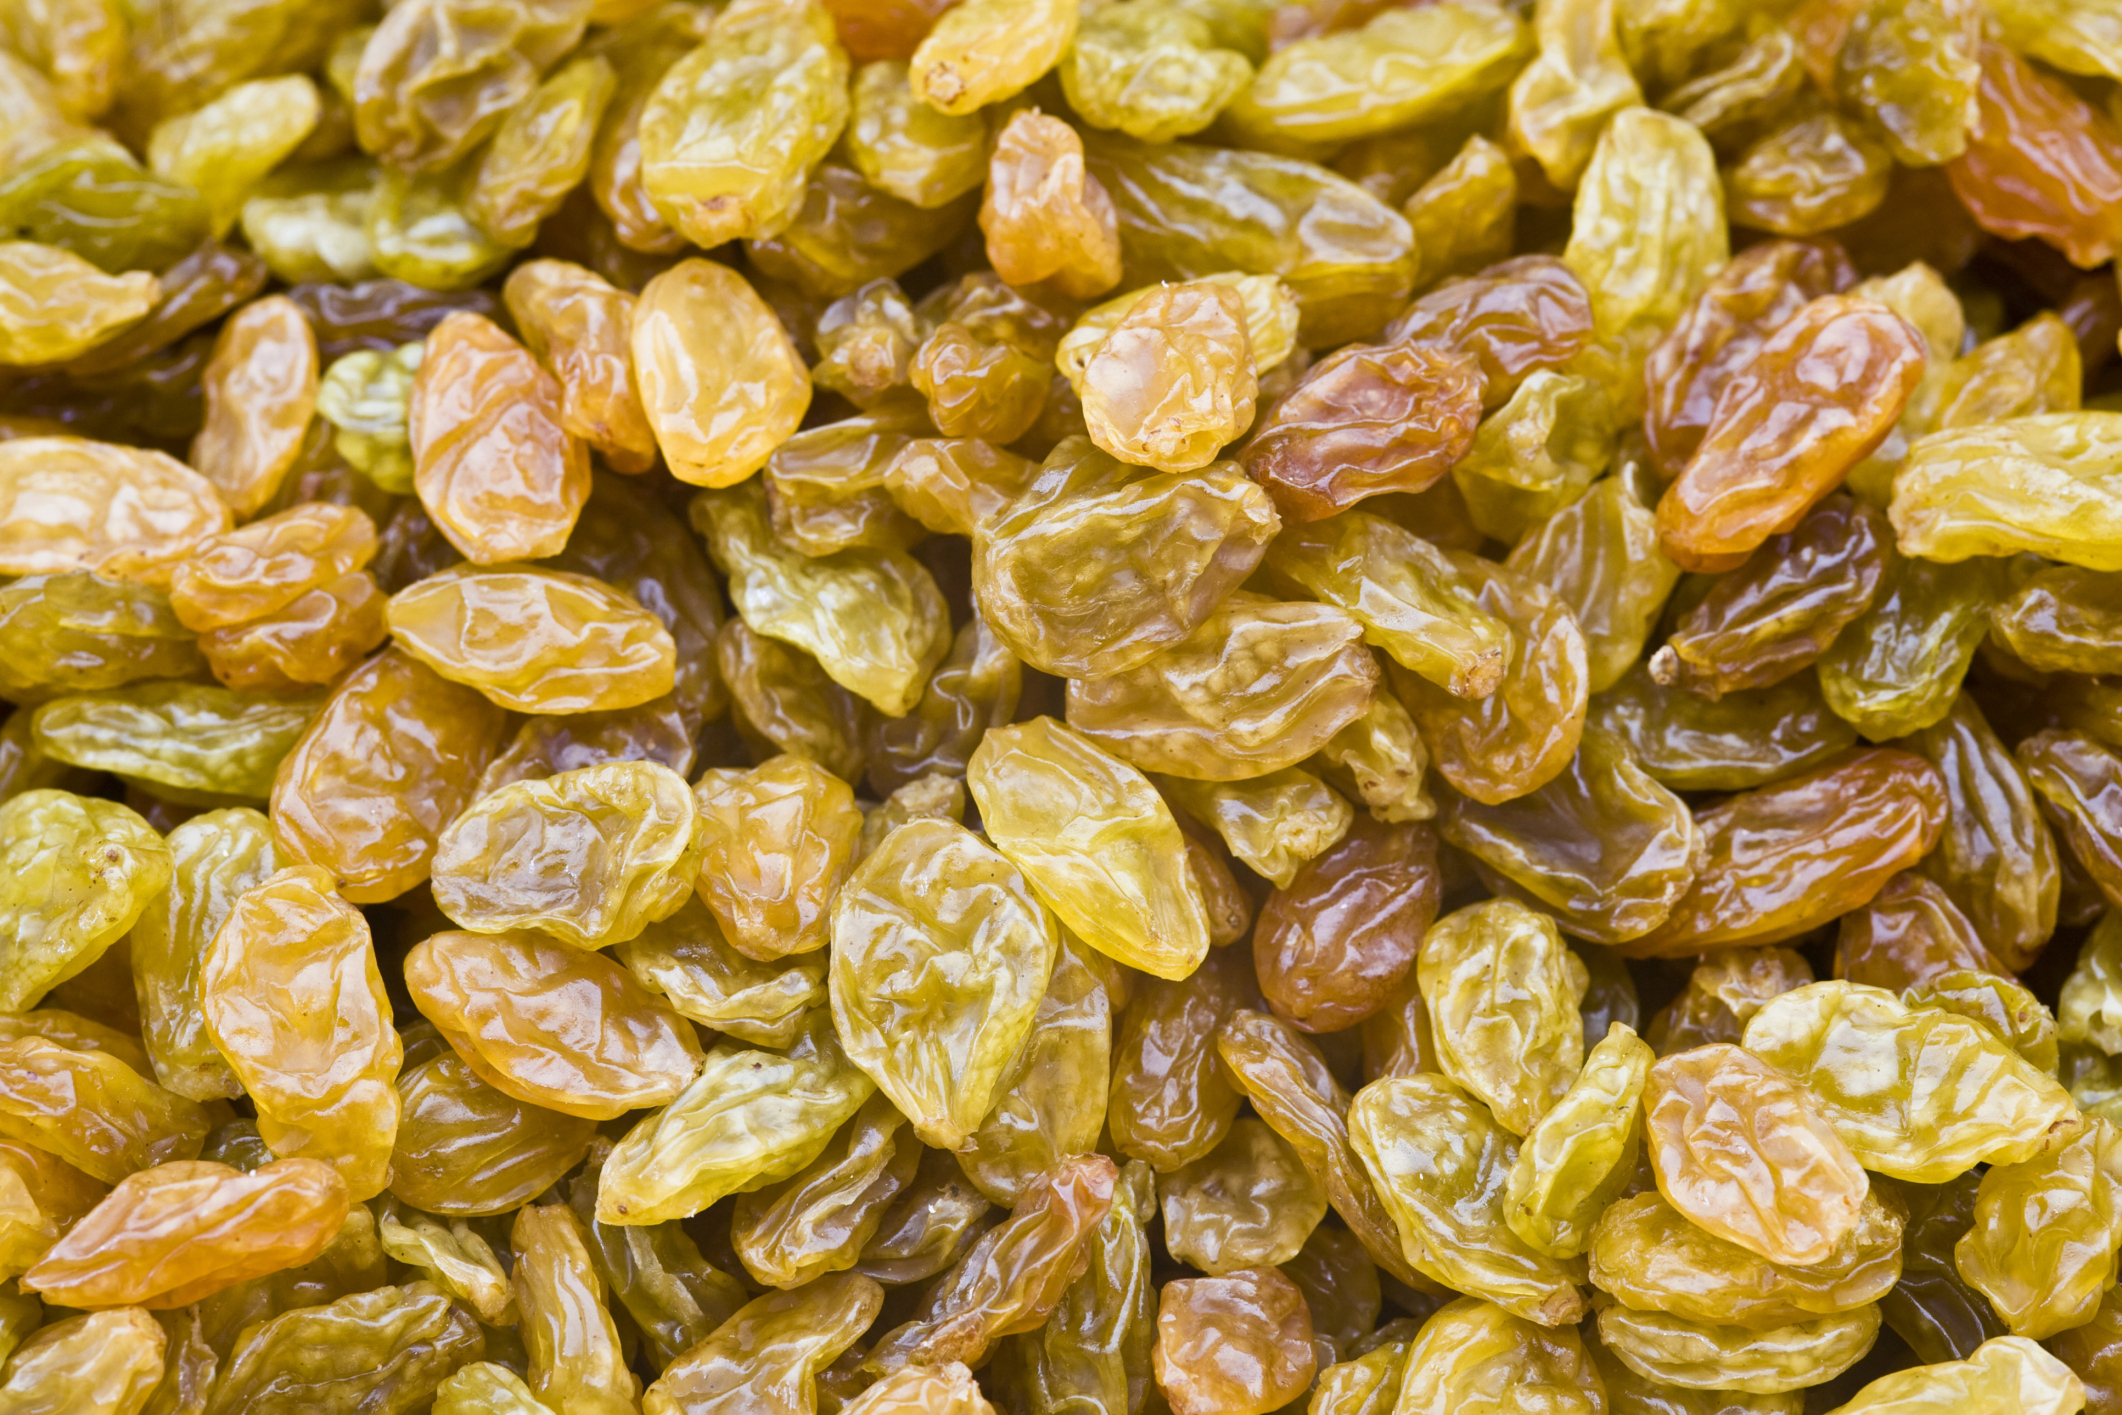 Calorie dried fruit. The benefits and harms of dried fruit 93